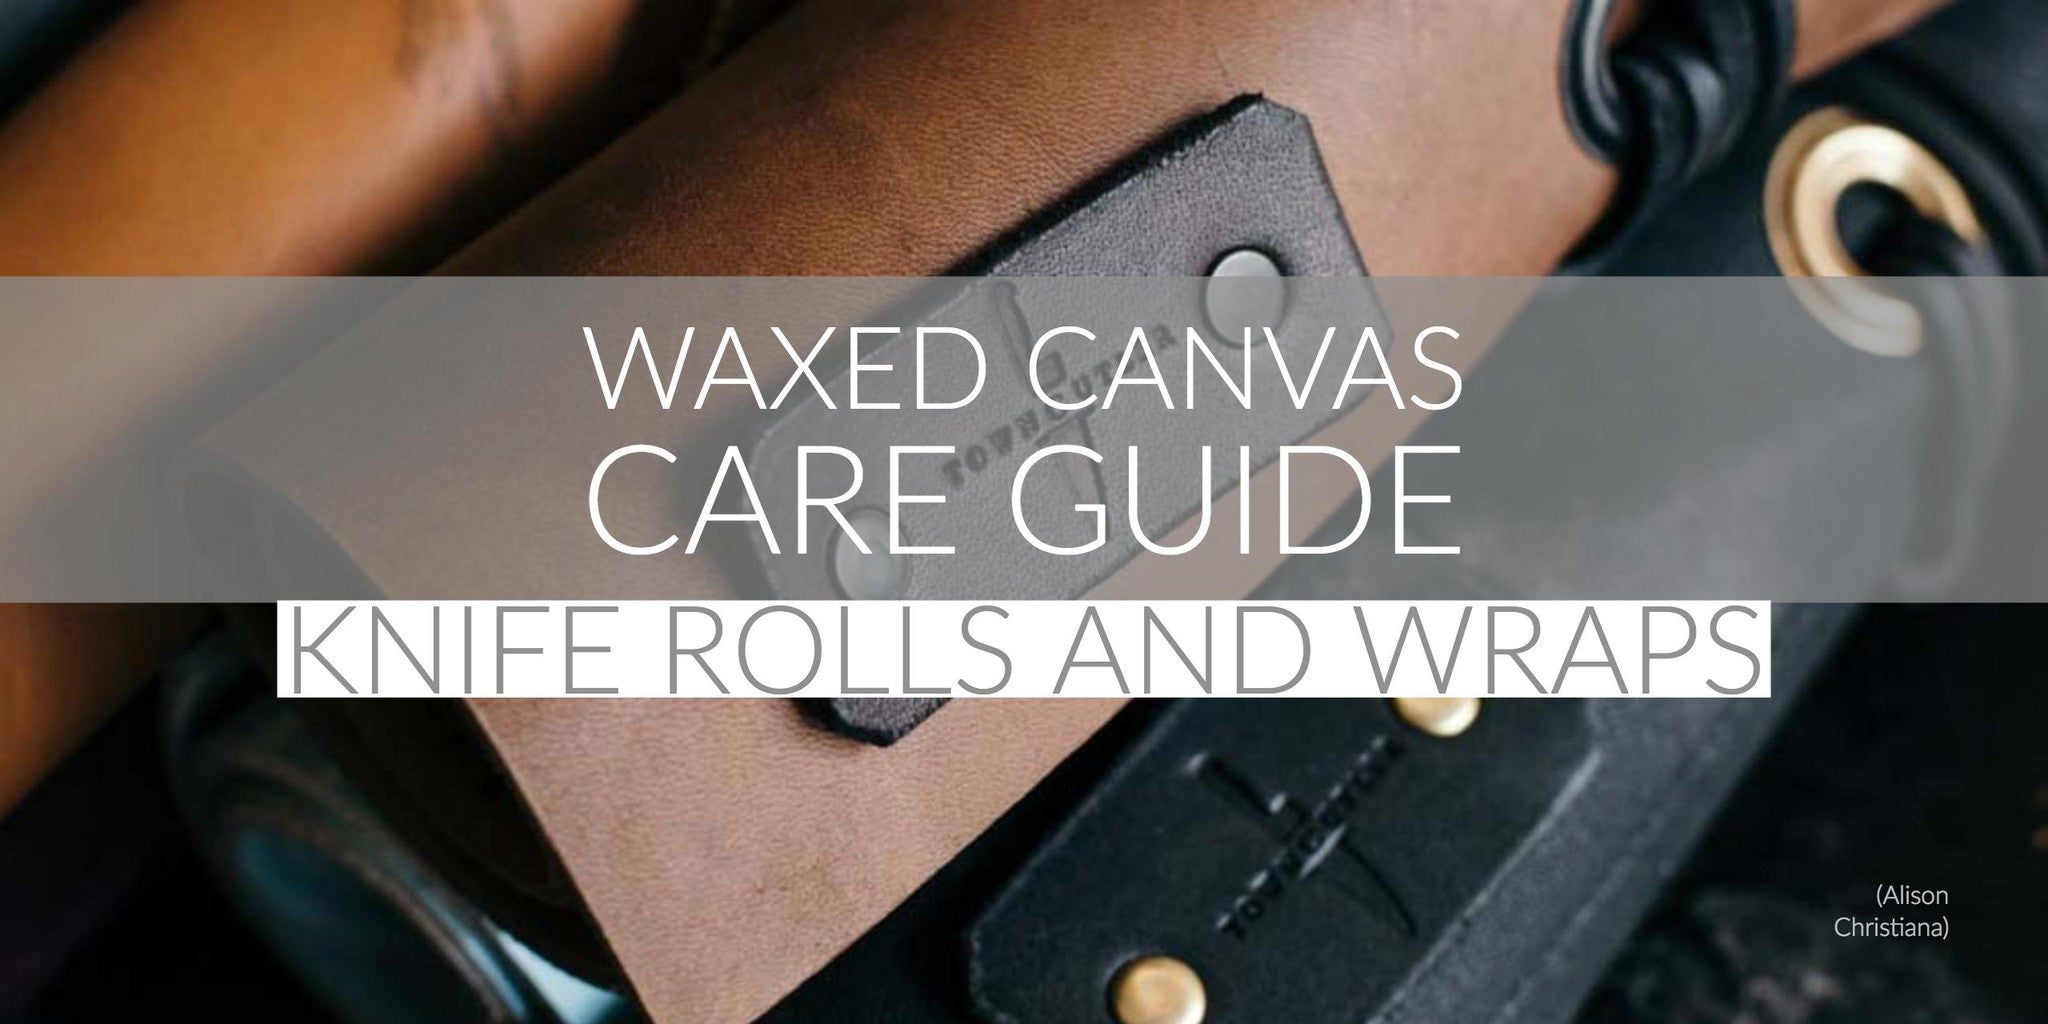 Waxed Canvas Care Guide for Knife Rolls and Wraps